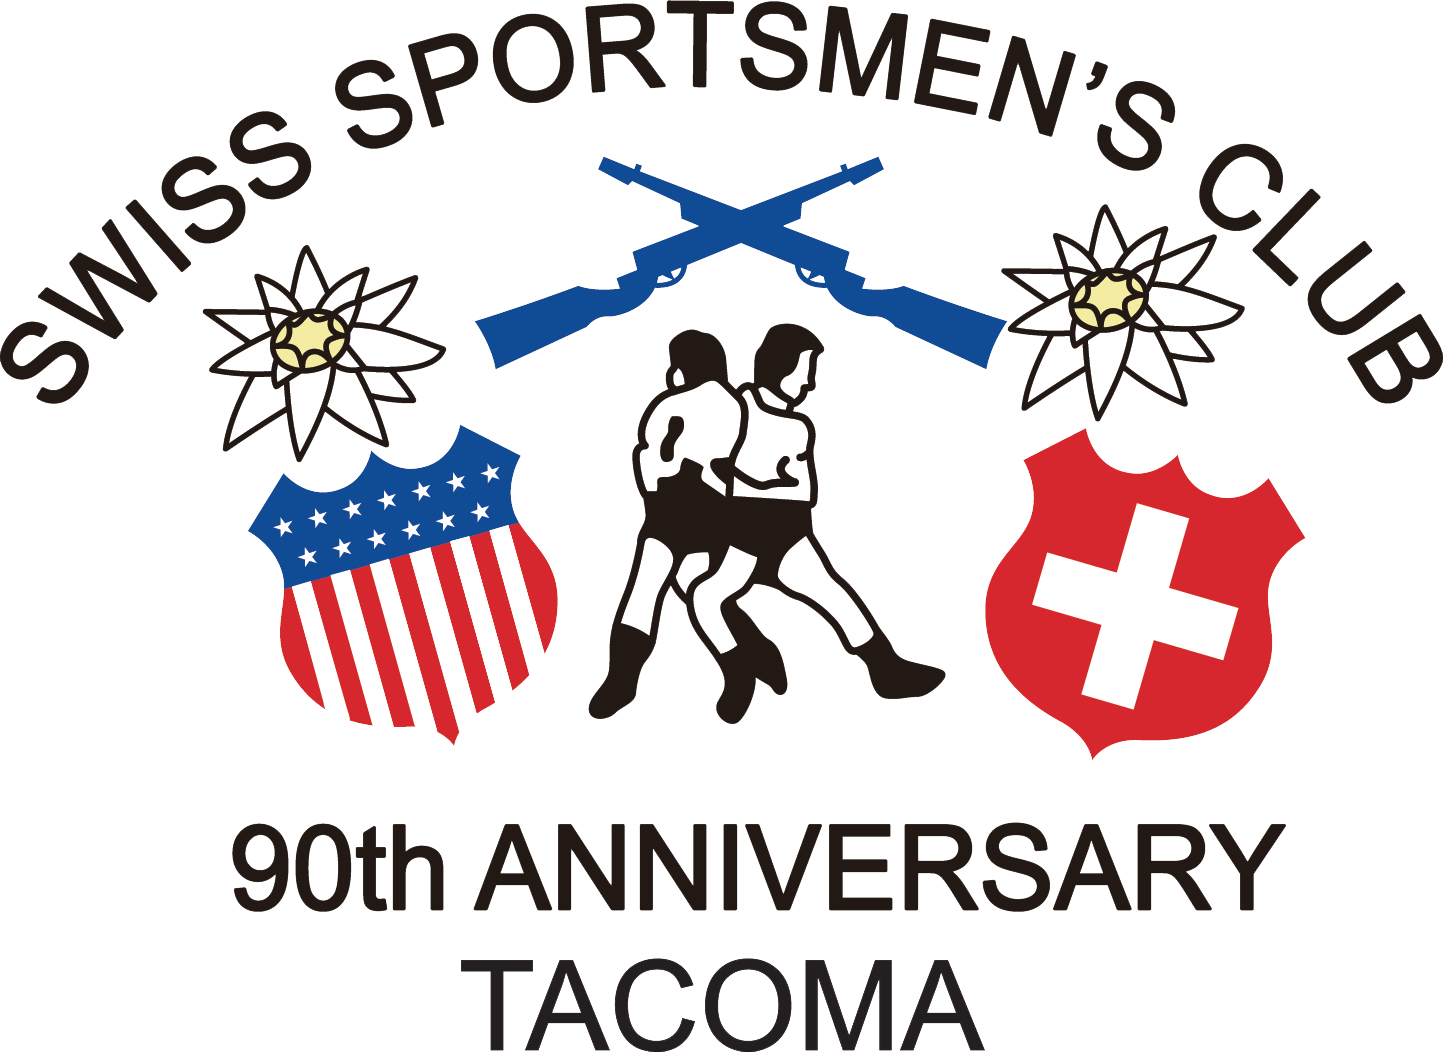 Swiss Sportsmen's Club of Tacoma